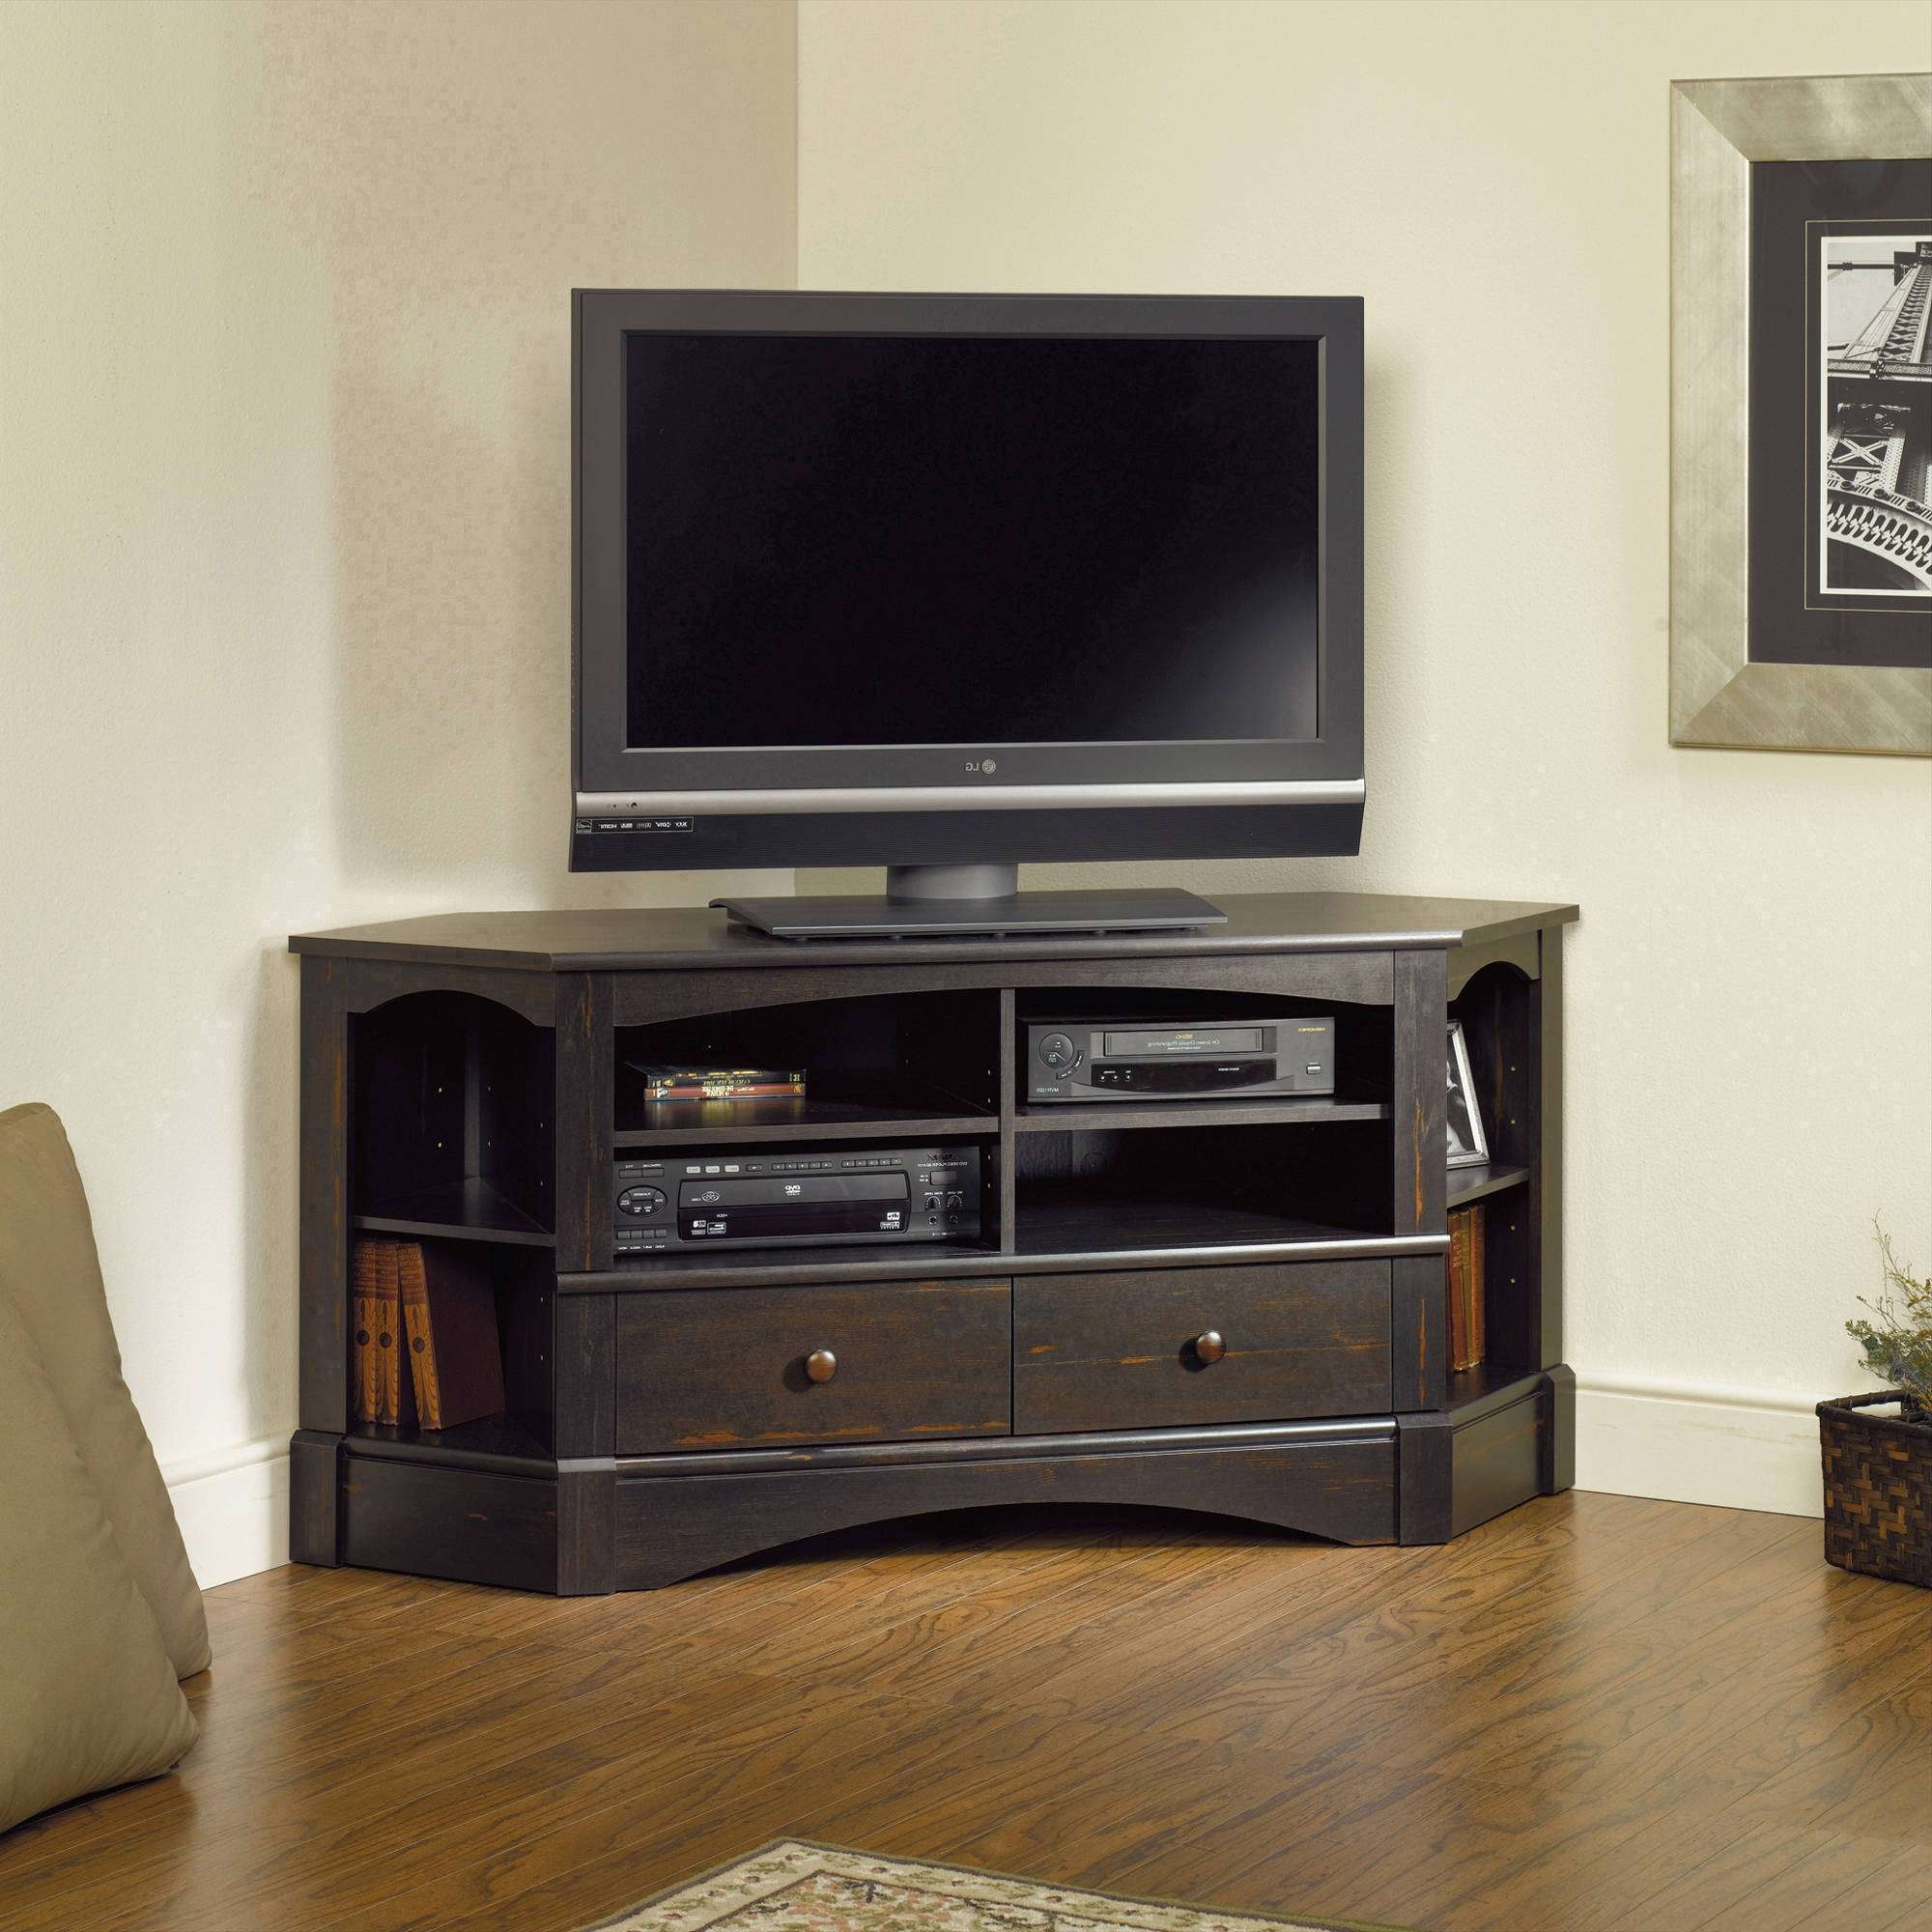 Tv Stand : 32 Unusual 55 Inch Corner Tv Stand With Mount Images Intended For Dark Brown Corner Tv Stands (View 14 of 15)